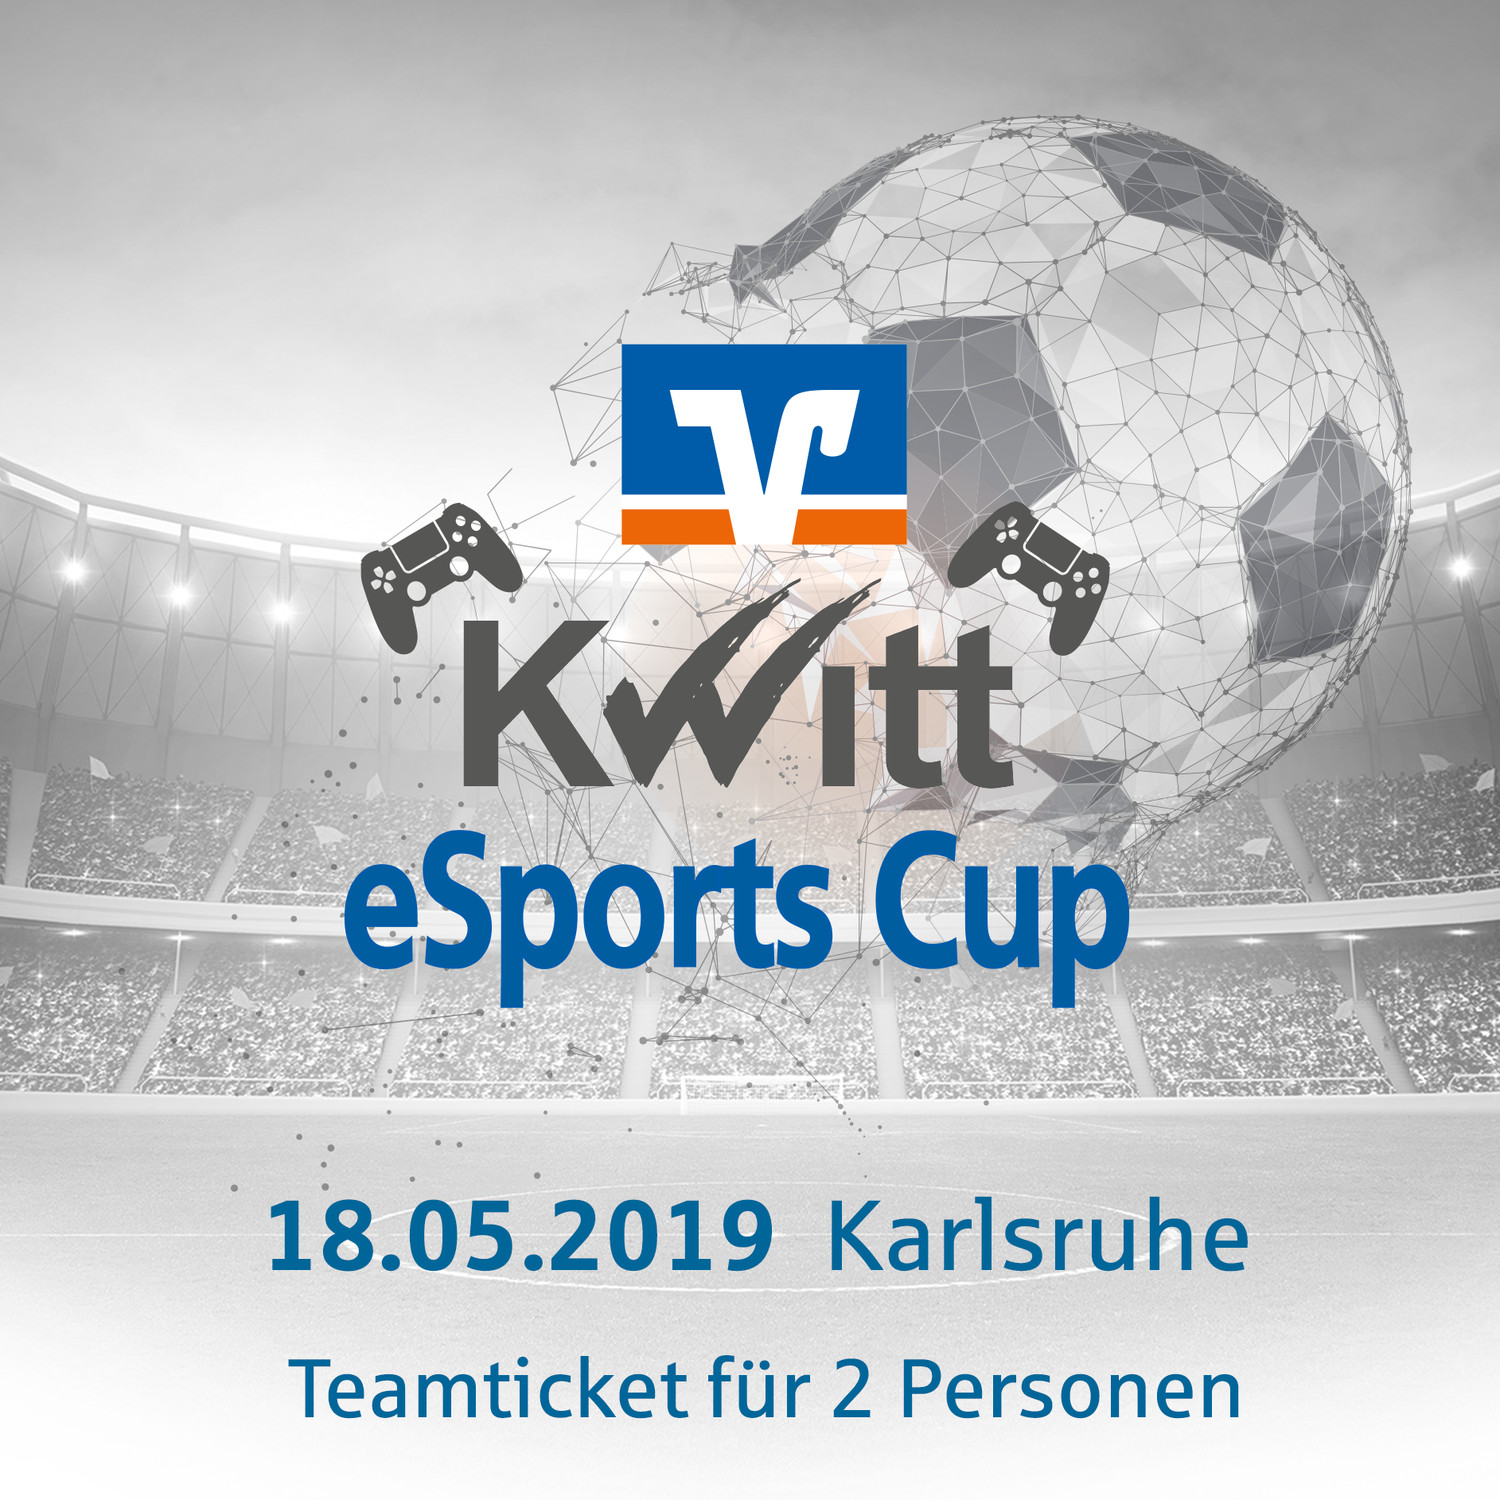 Kwitt eSports Cup powered by Volksbank Karlsruhe